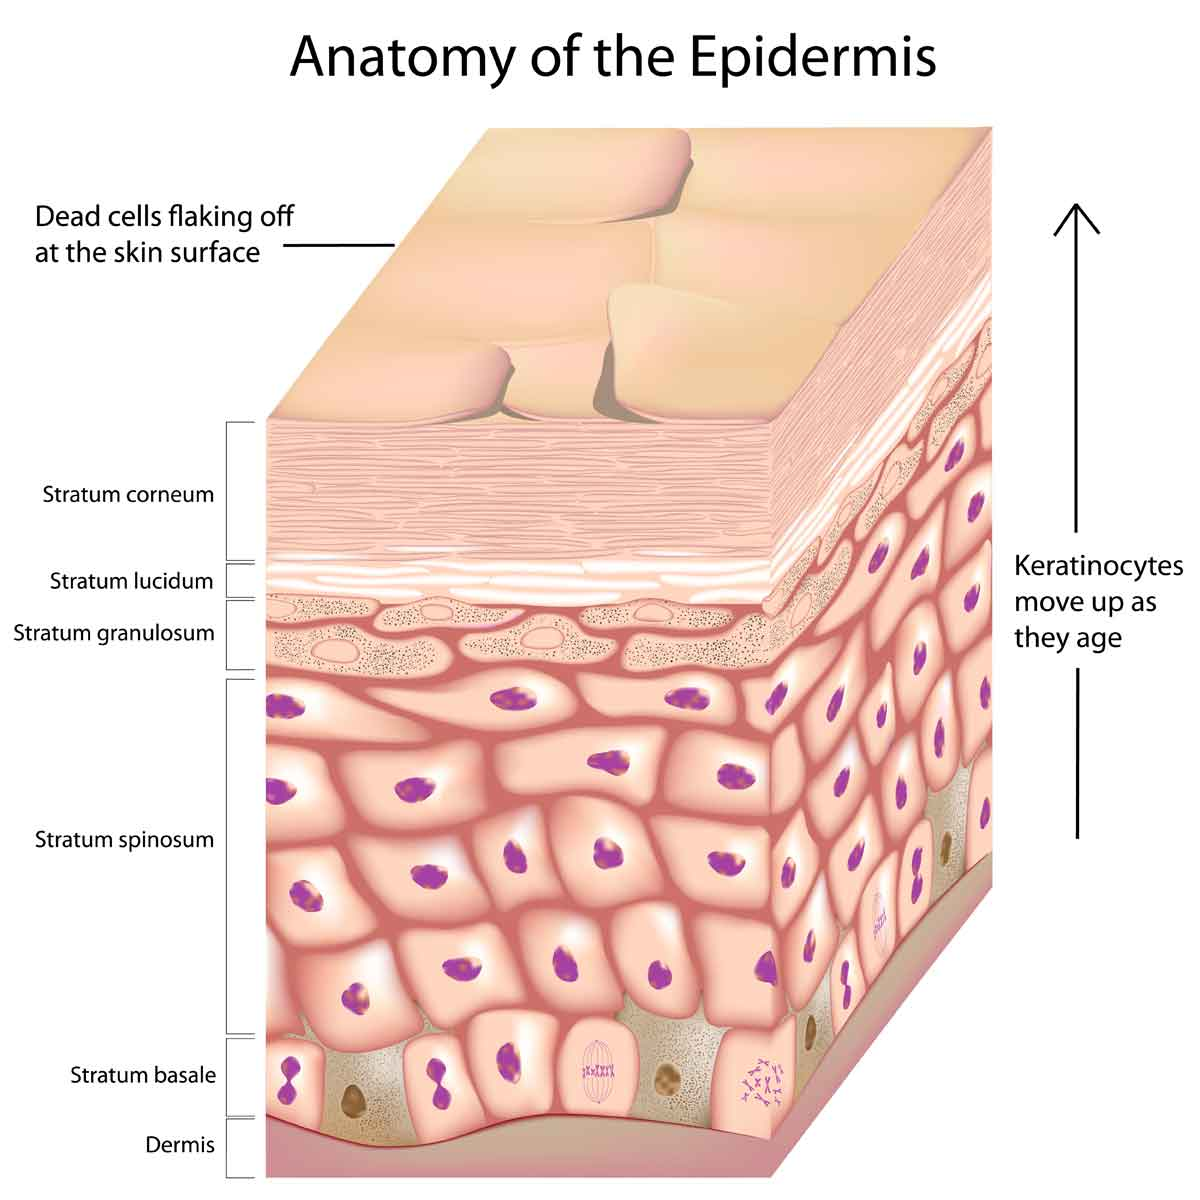 Dermatology care at GA Derm Center includes medical care and